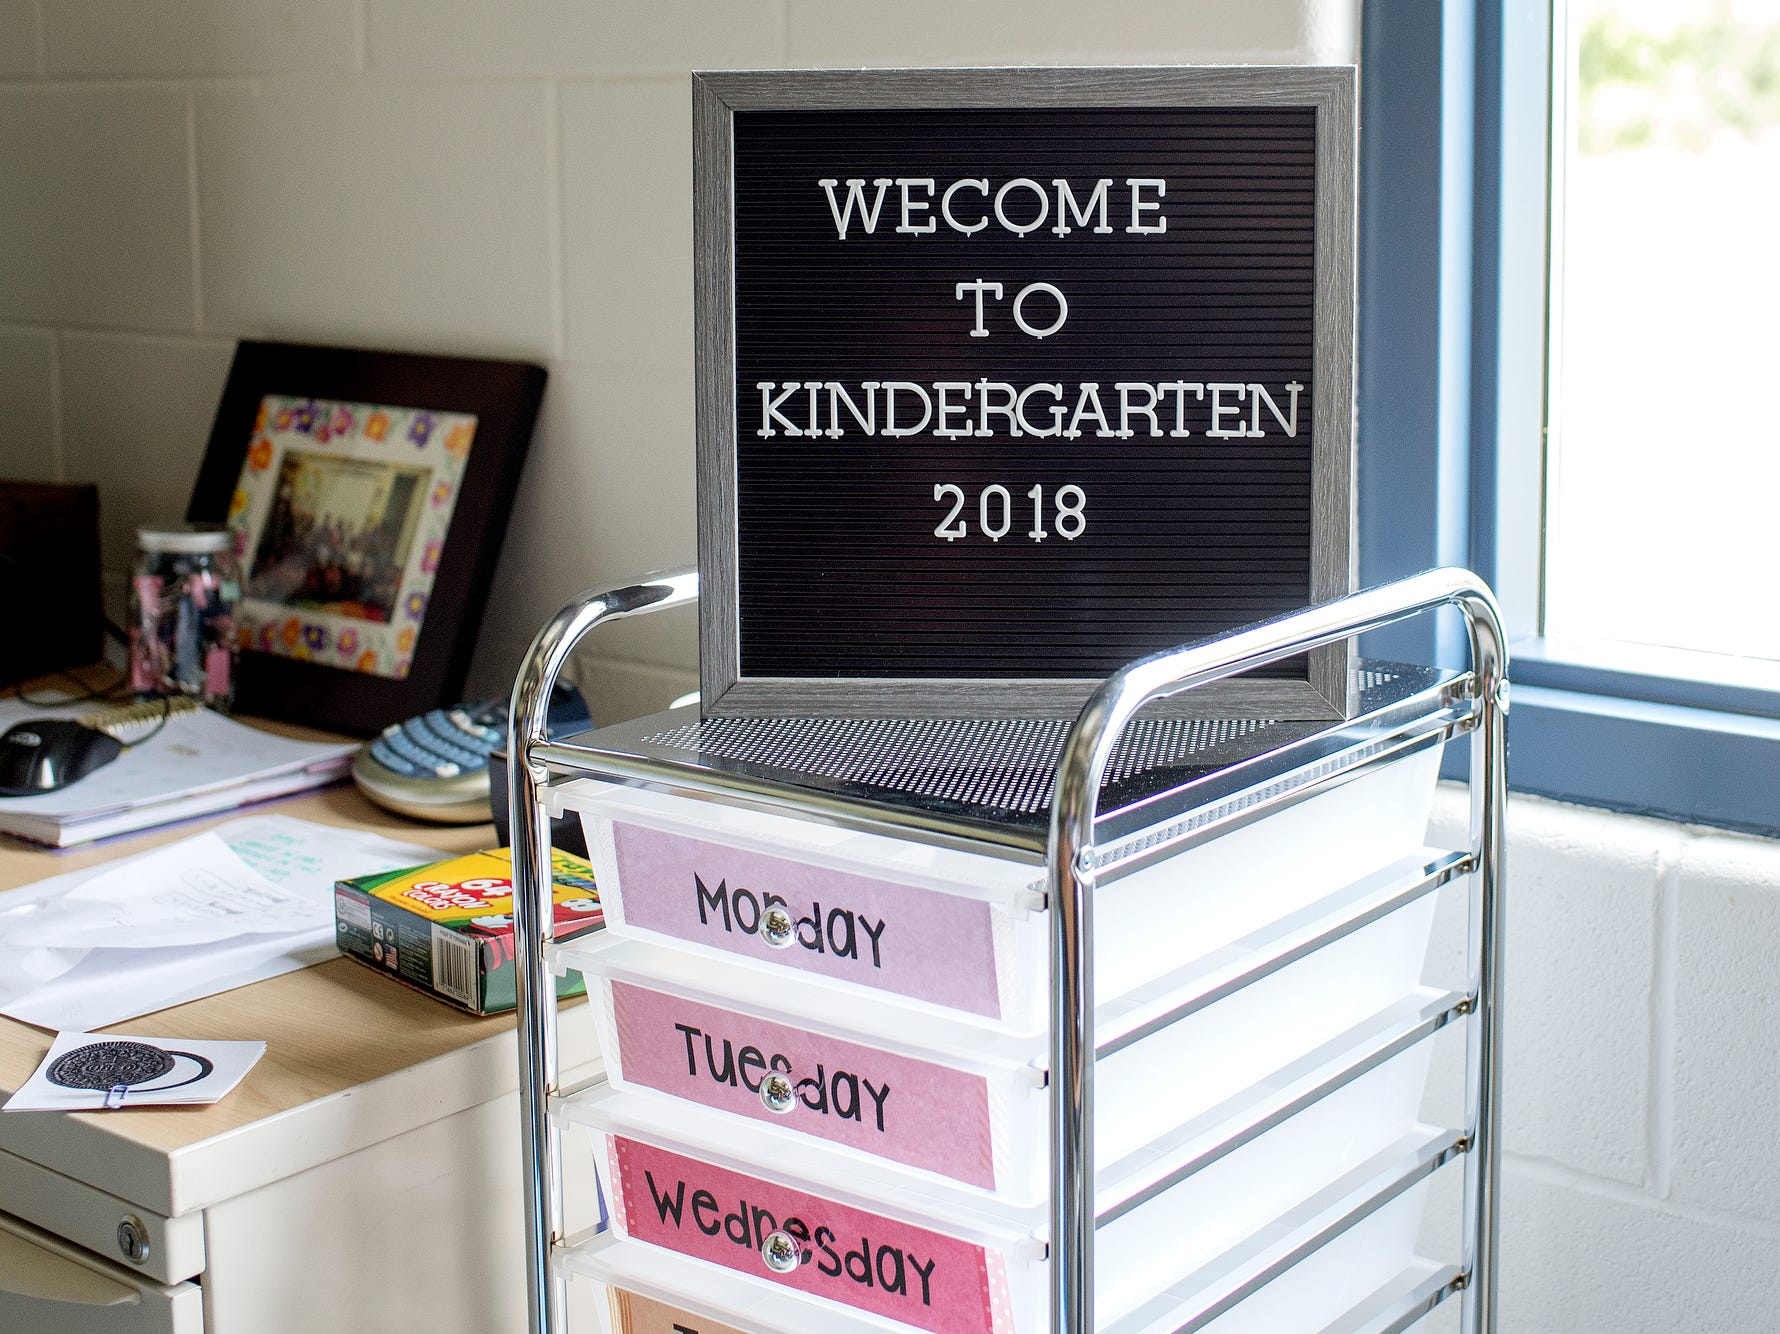 A sign welcomes kindergartners inside of a classroom photographed on Wednesday, Aug. 1, 2018, at Cole Academy's East Lansing campus. The school, Cole Academy's second campus, is opening this fall.